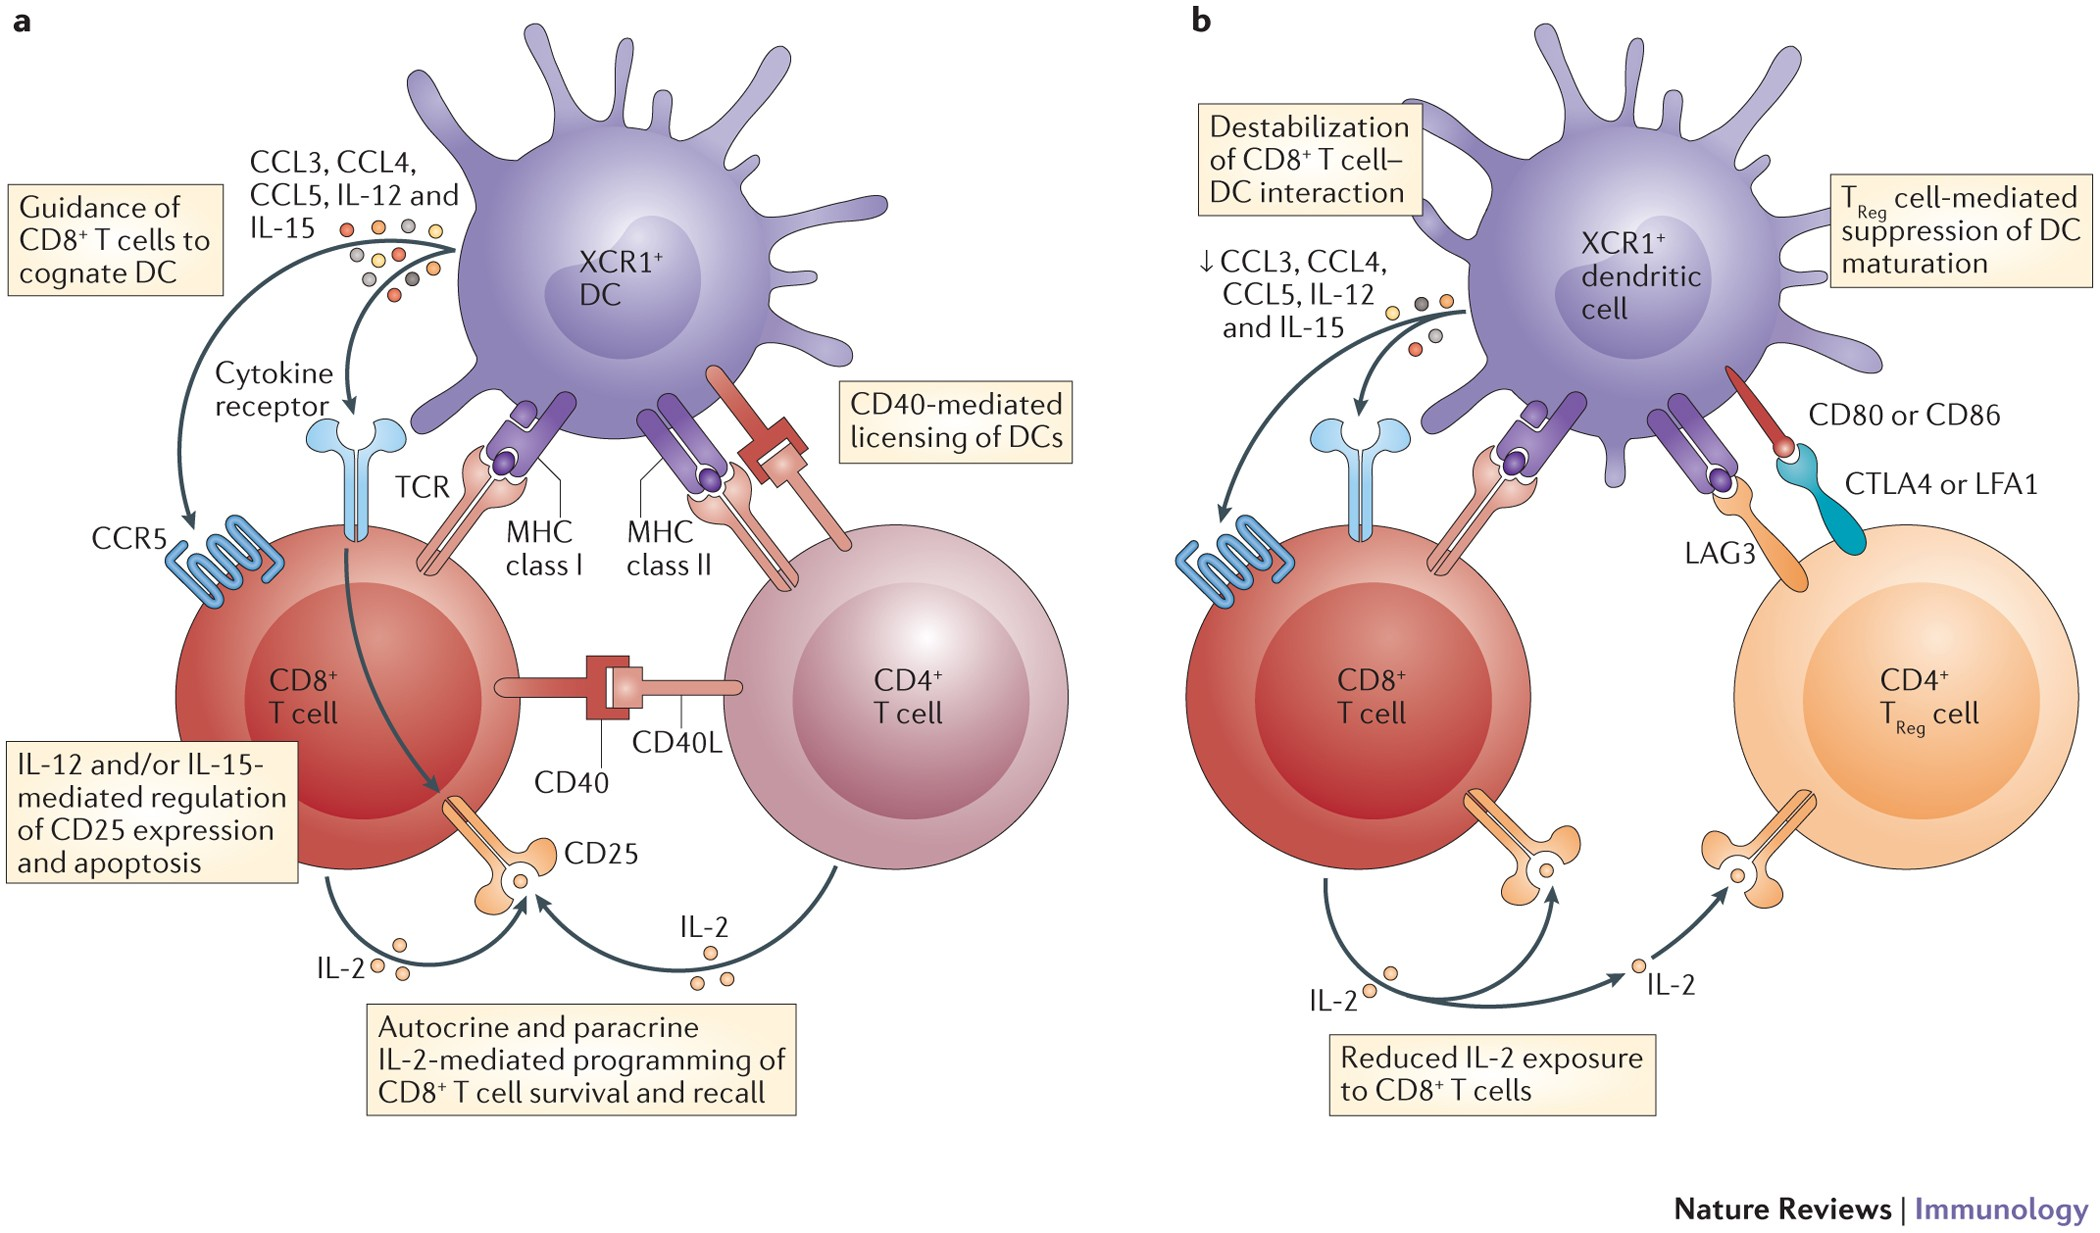 The multifaceted role of CD4 + T cells in CD8 + T cell memory ...